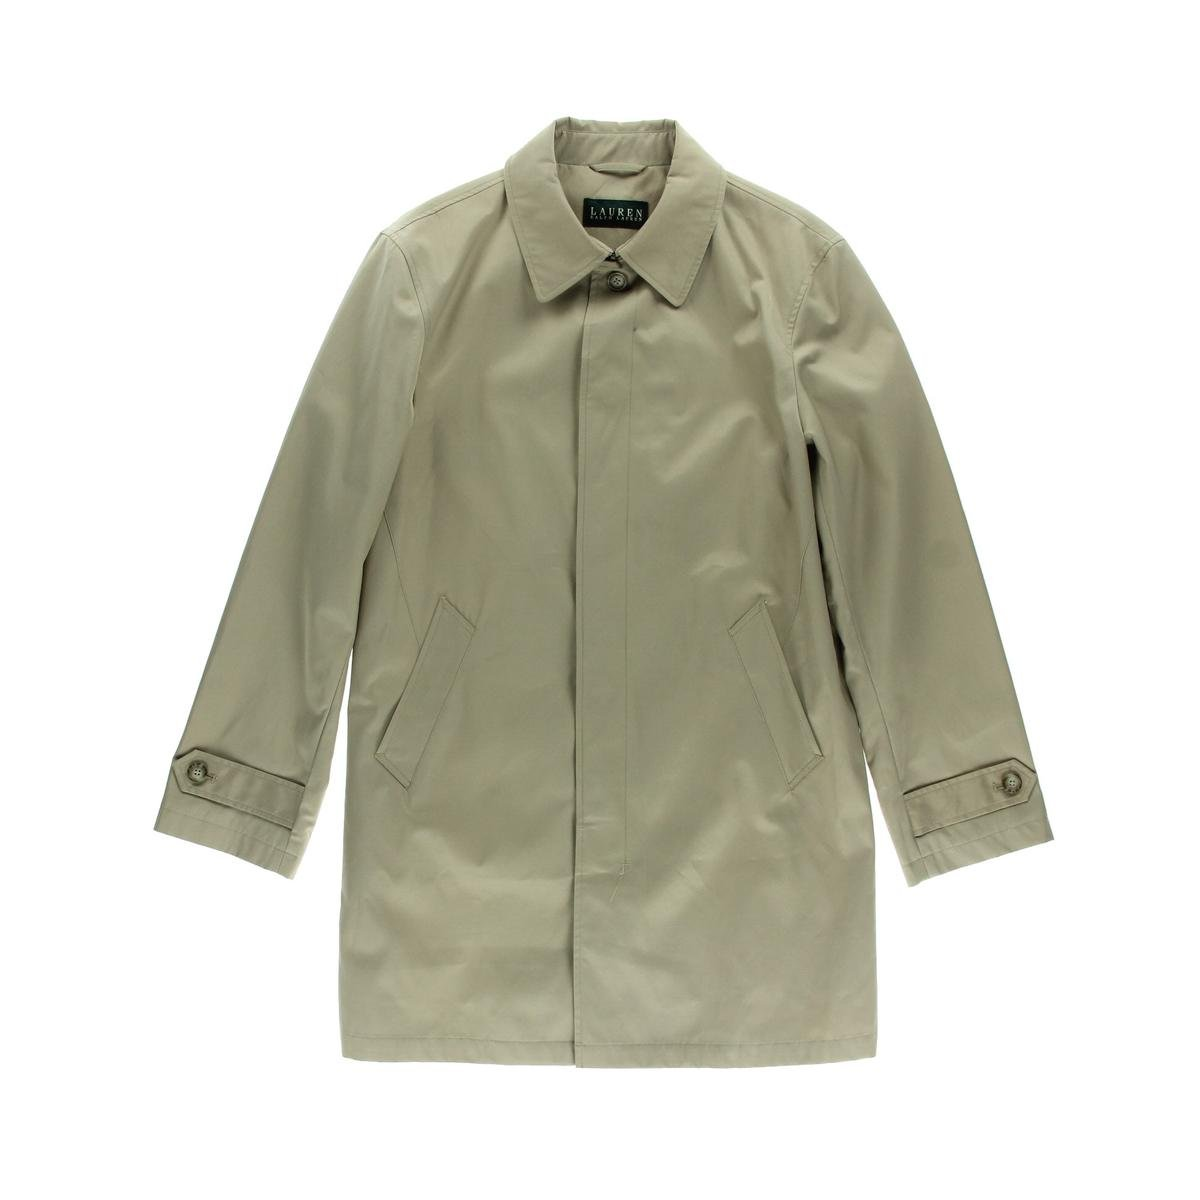 Lauren Ralph Lauren Mens Stanza Water Resistant Lined Raincoat Tan 42S by Lauren by Ralph Lauren